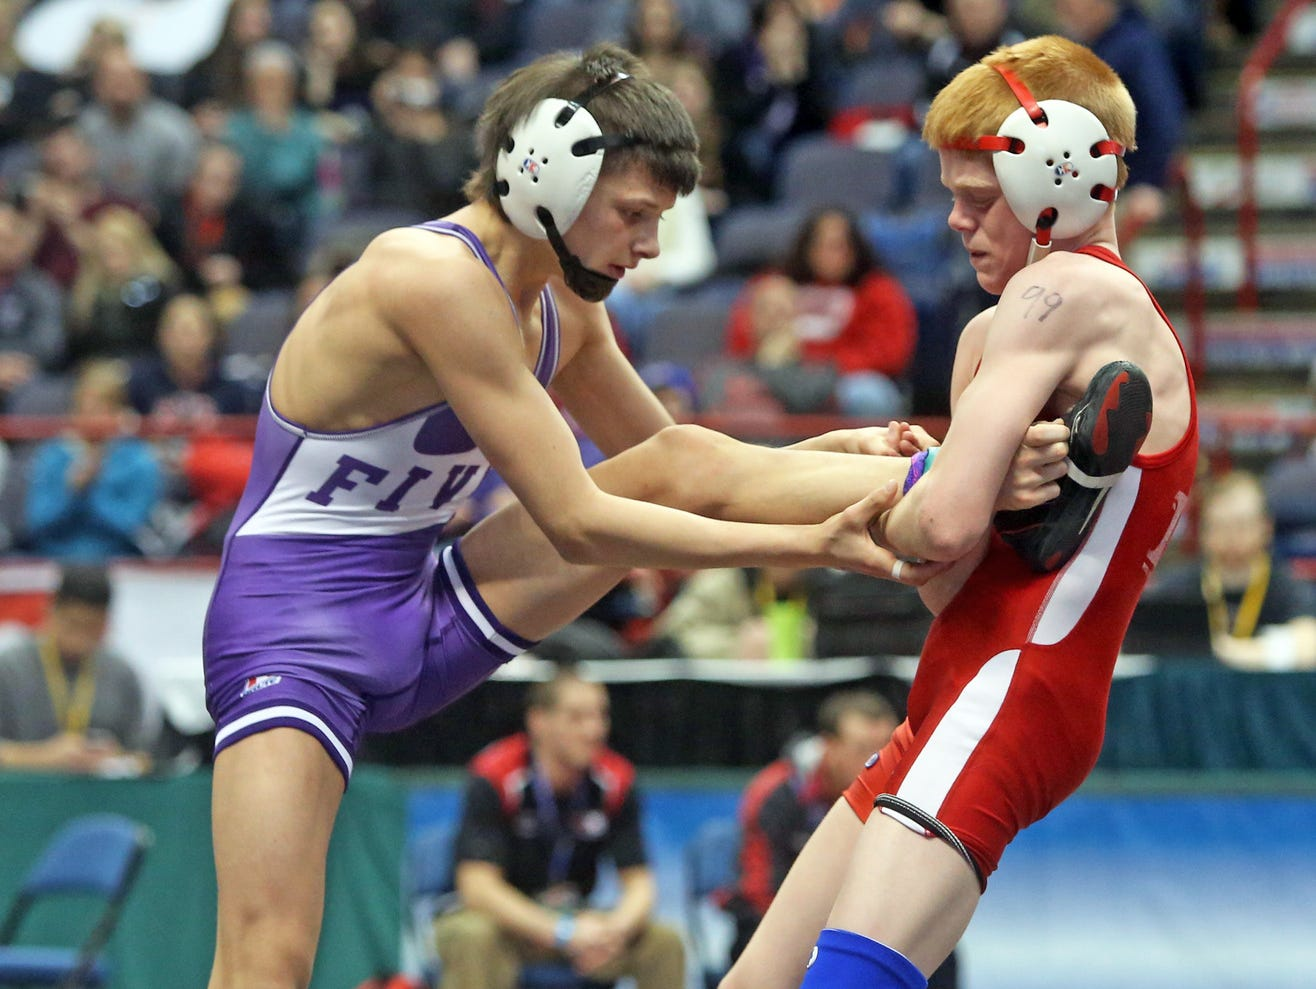 A.J. Burkhart of Waverly defeated Drew Shafer of Pal-Mac in overtime in a 99 pound semifinal match at the New York State High School wrestling championships at the Times Union Center in Albany Feb. 28, 2015.